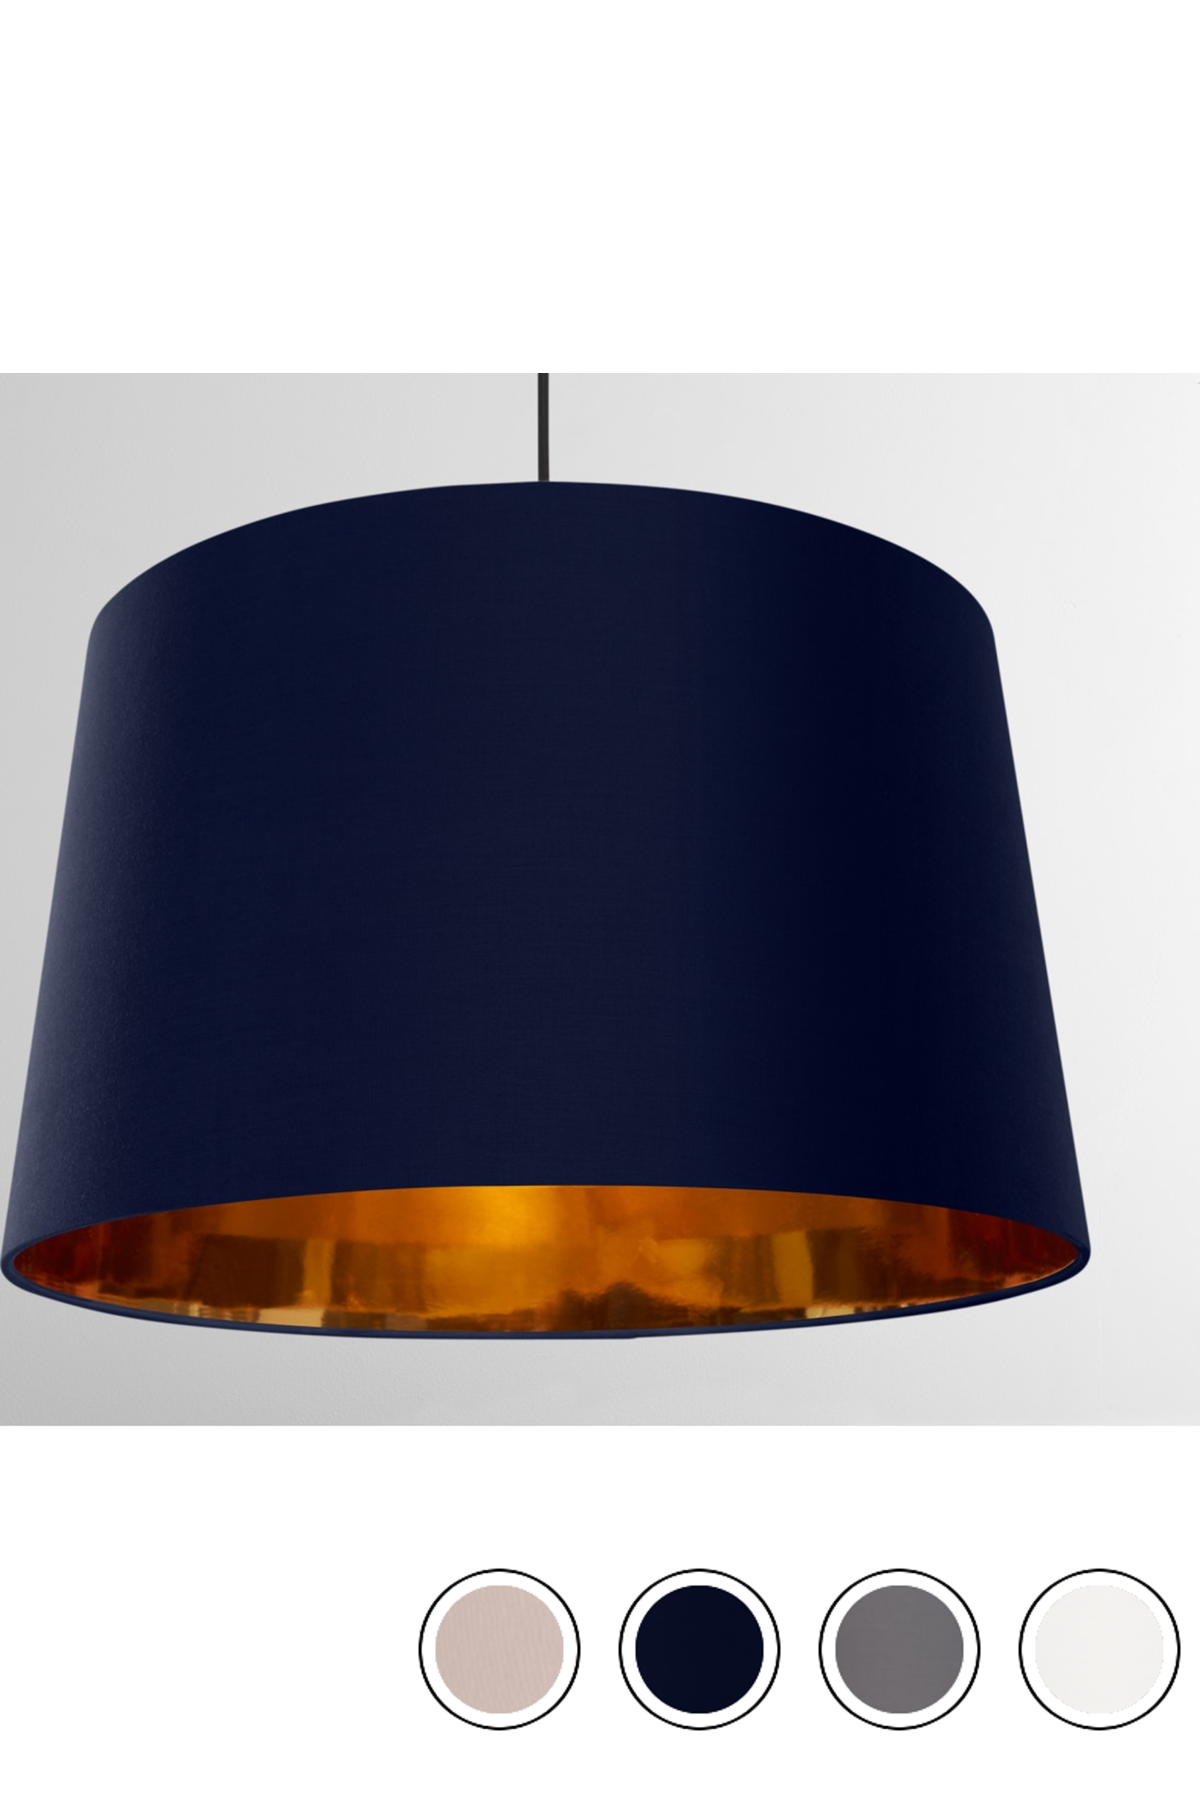 Oro Extra Large Tapered Pendant Drum Lamp Shade Navy And Copper Navy Copper Copper Pendant Lights Shades